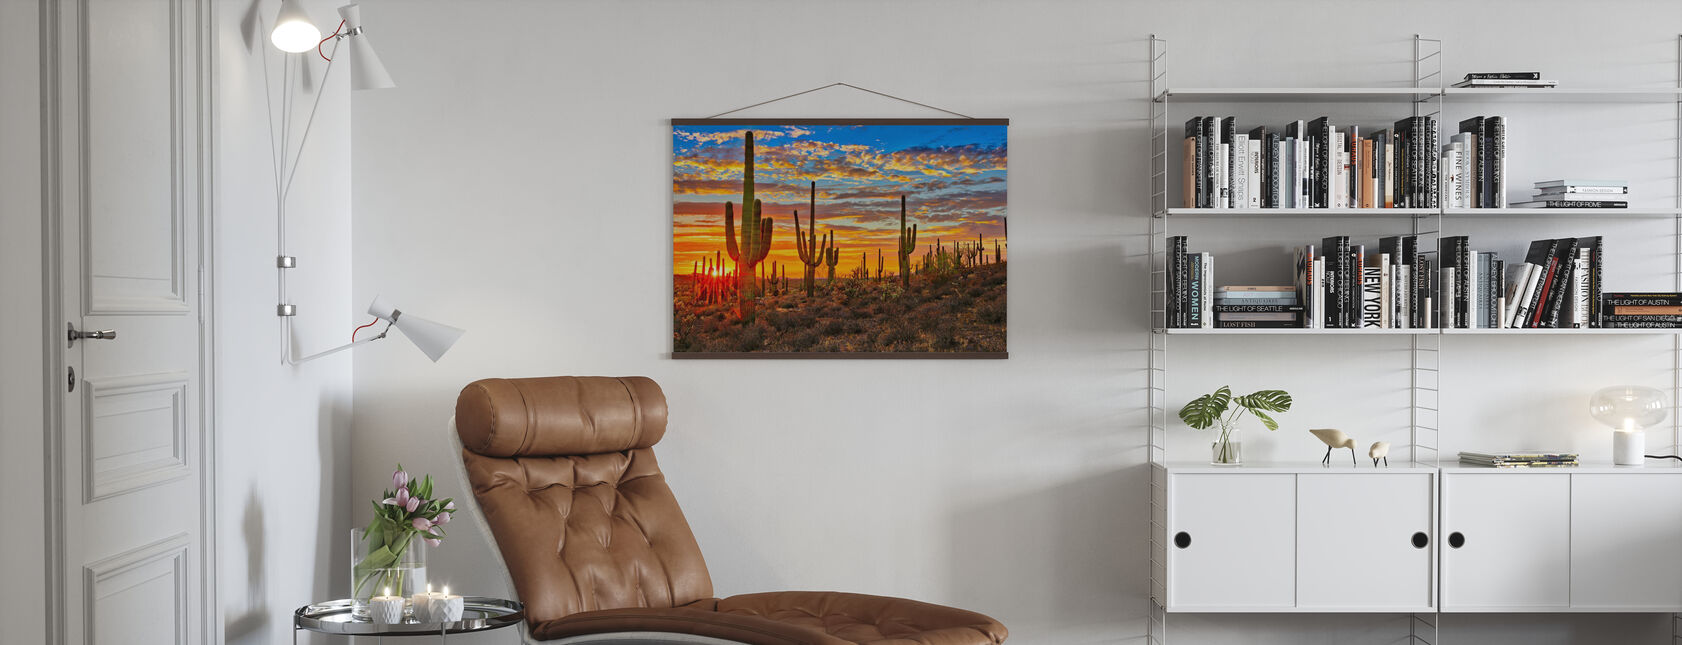 Sunset Desert - Poster - Living Room